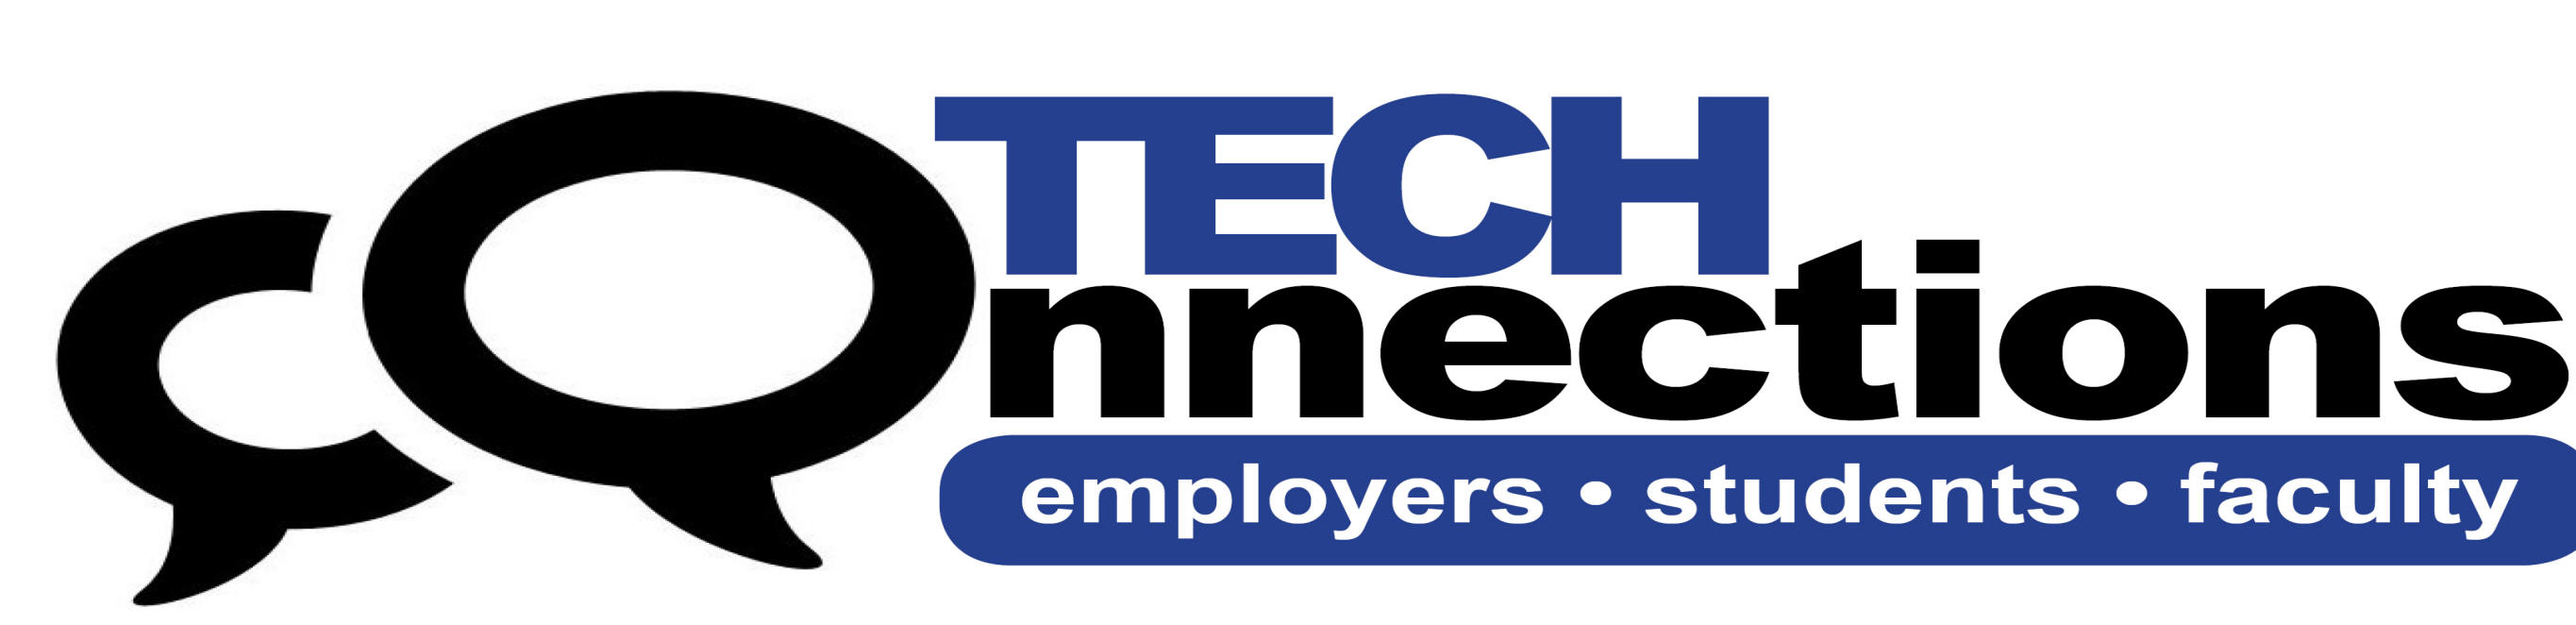 tech connections logo